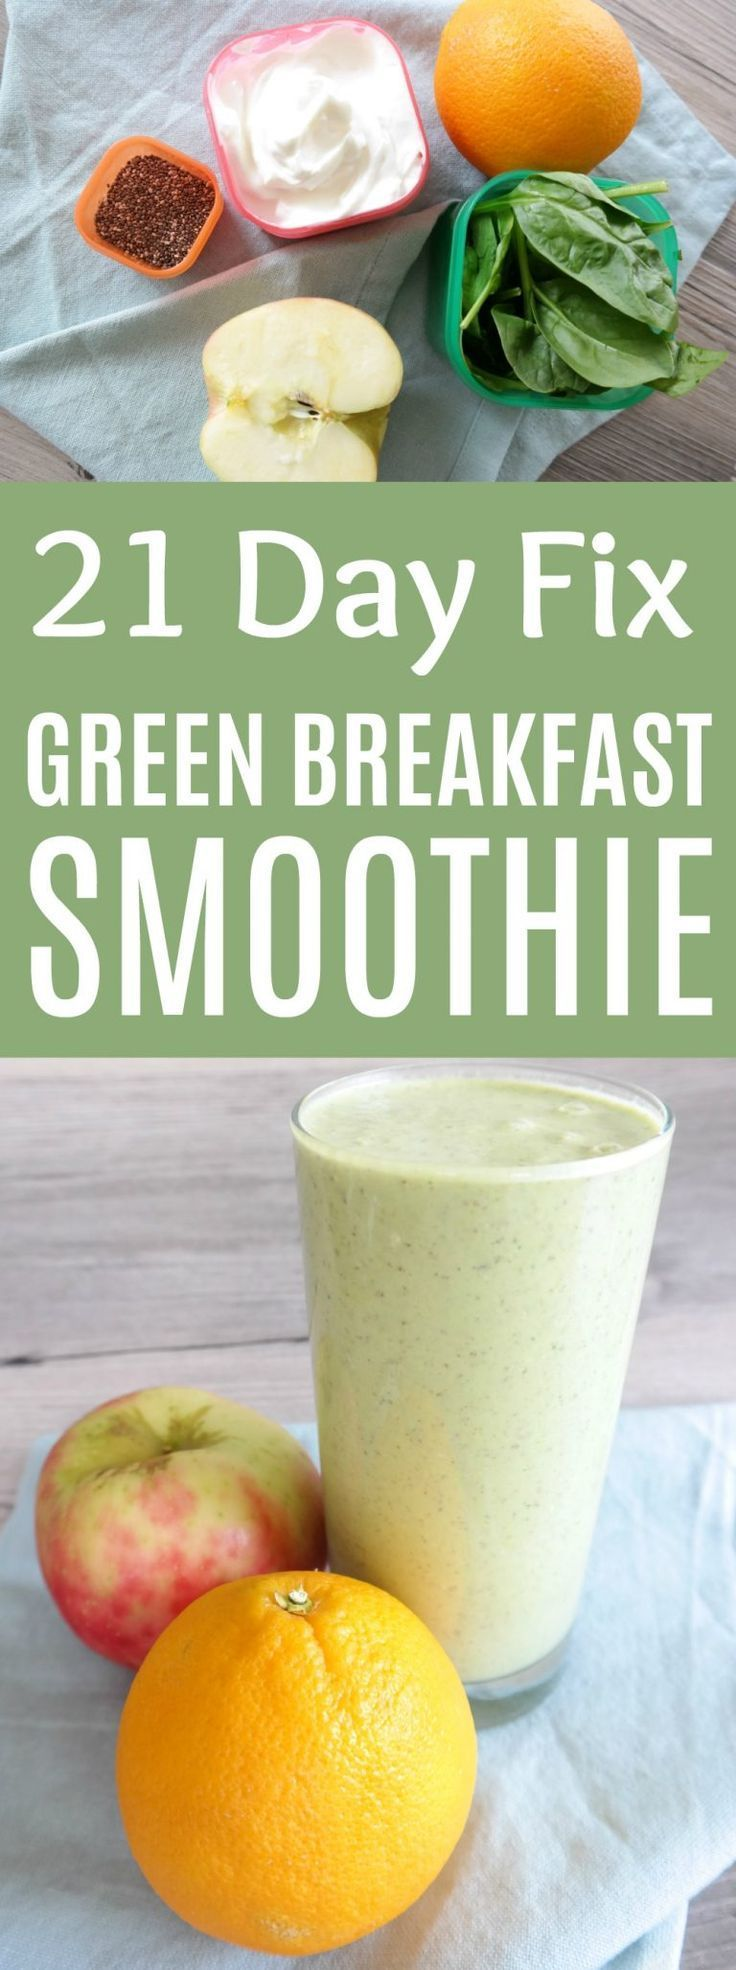 This 21 Day Fix Green Breakfast Smoothie is the perfect quick breakfast recipe! 21 Day Fix Smoothie | 21 Day Fix Breakfast Recipe | Green Smoothie Recipe http://eatdojo.com/healthy-smoothies-weightloss-detox-clean/